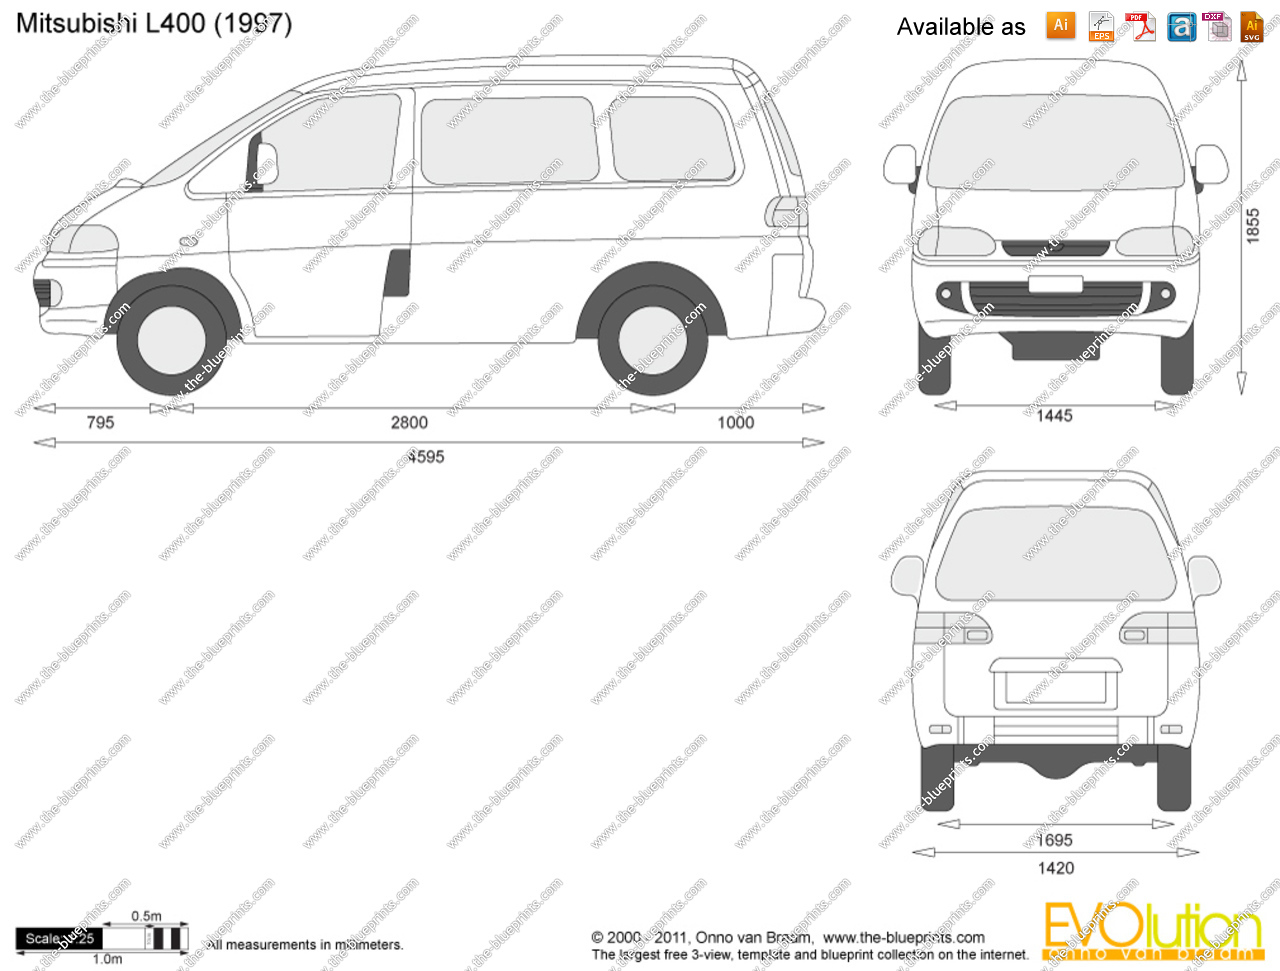 Pictures of mitsubishi l400